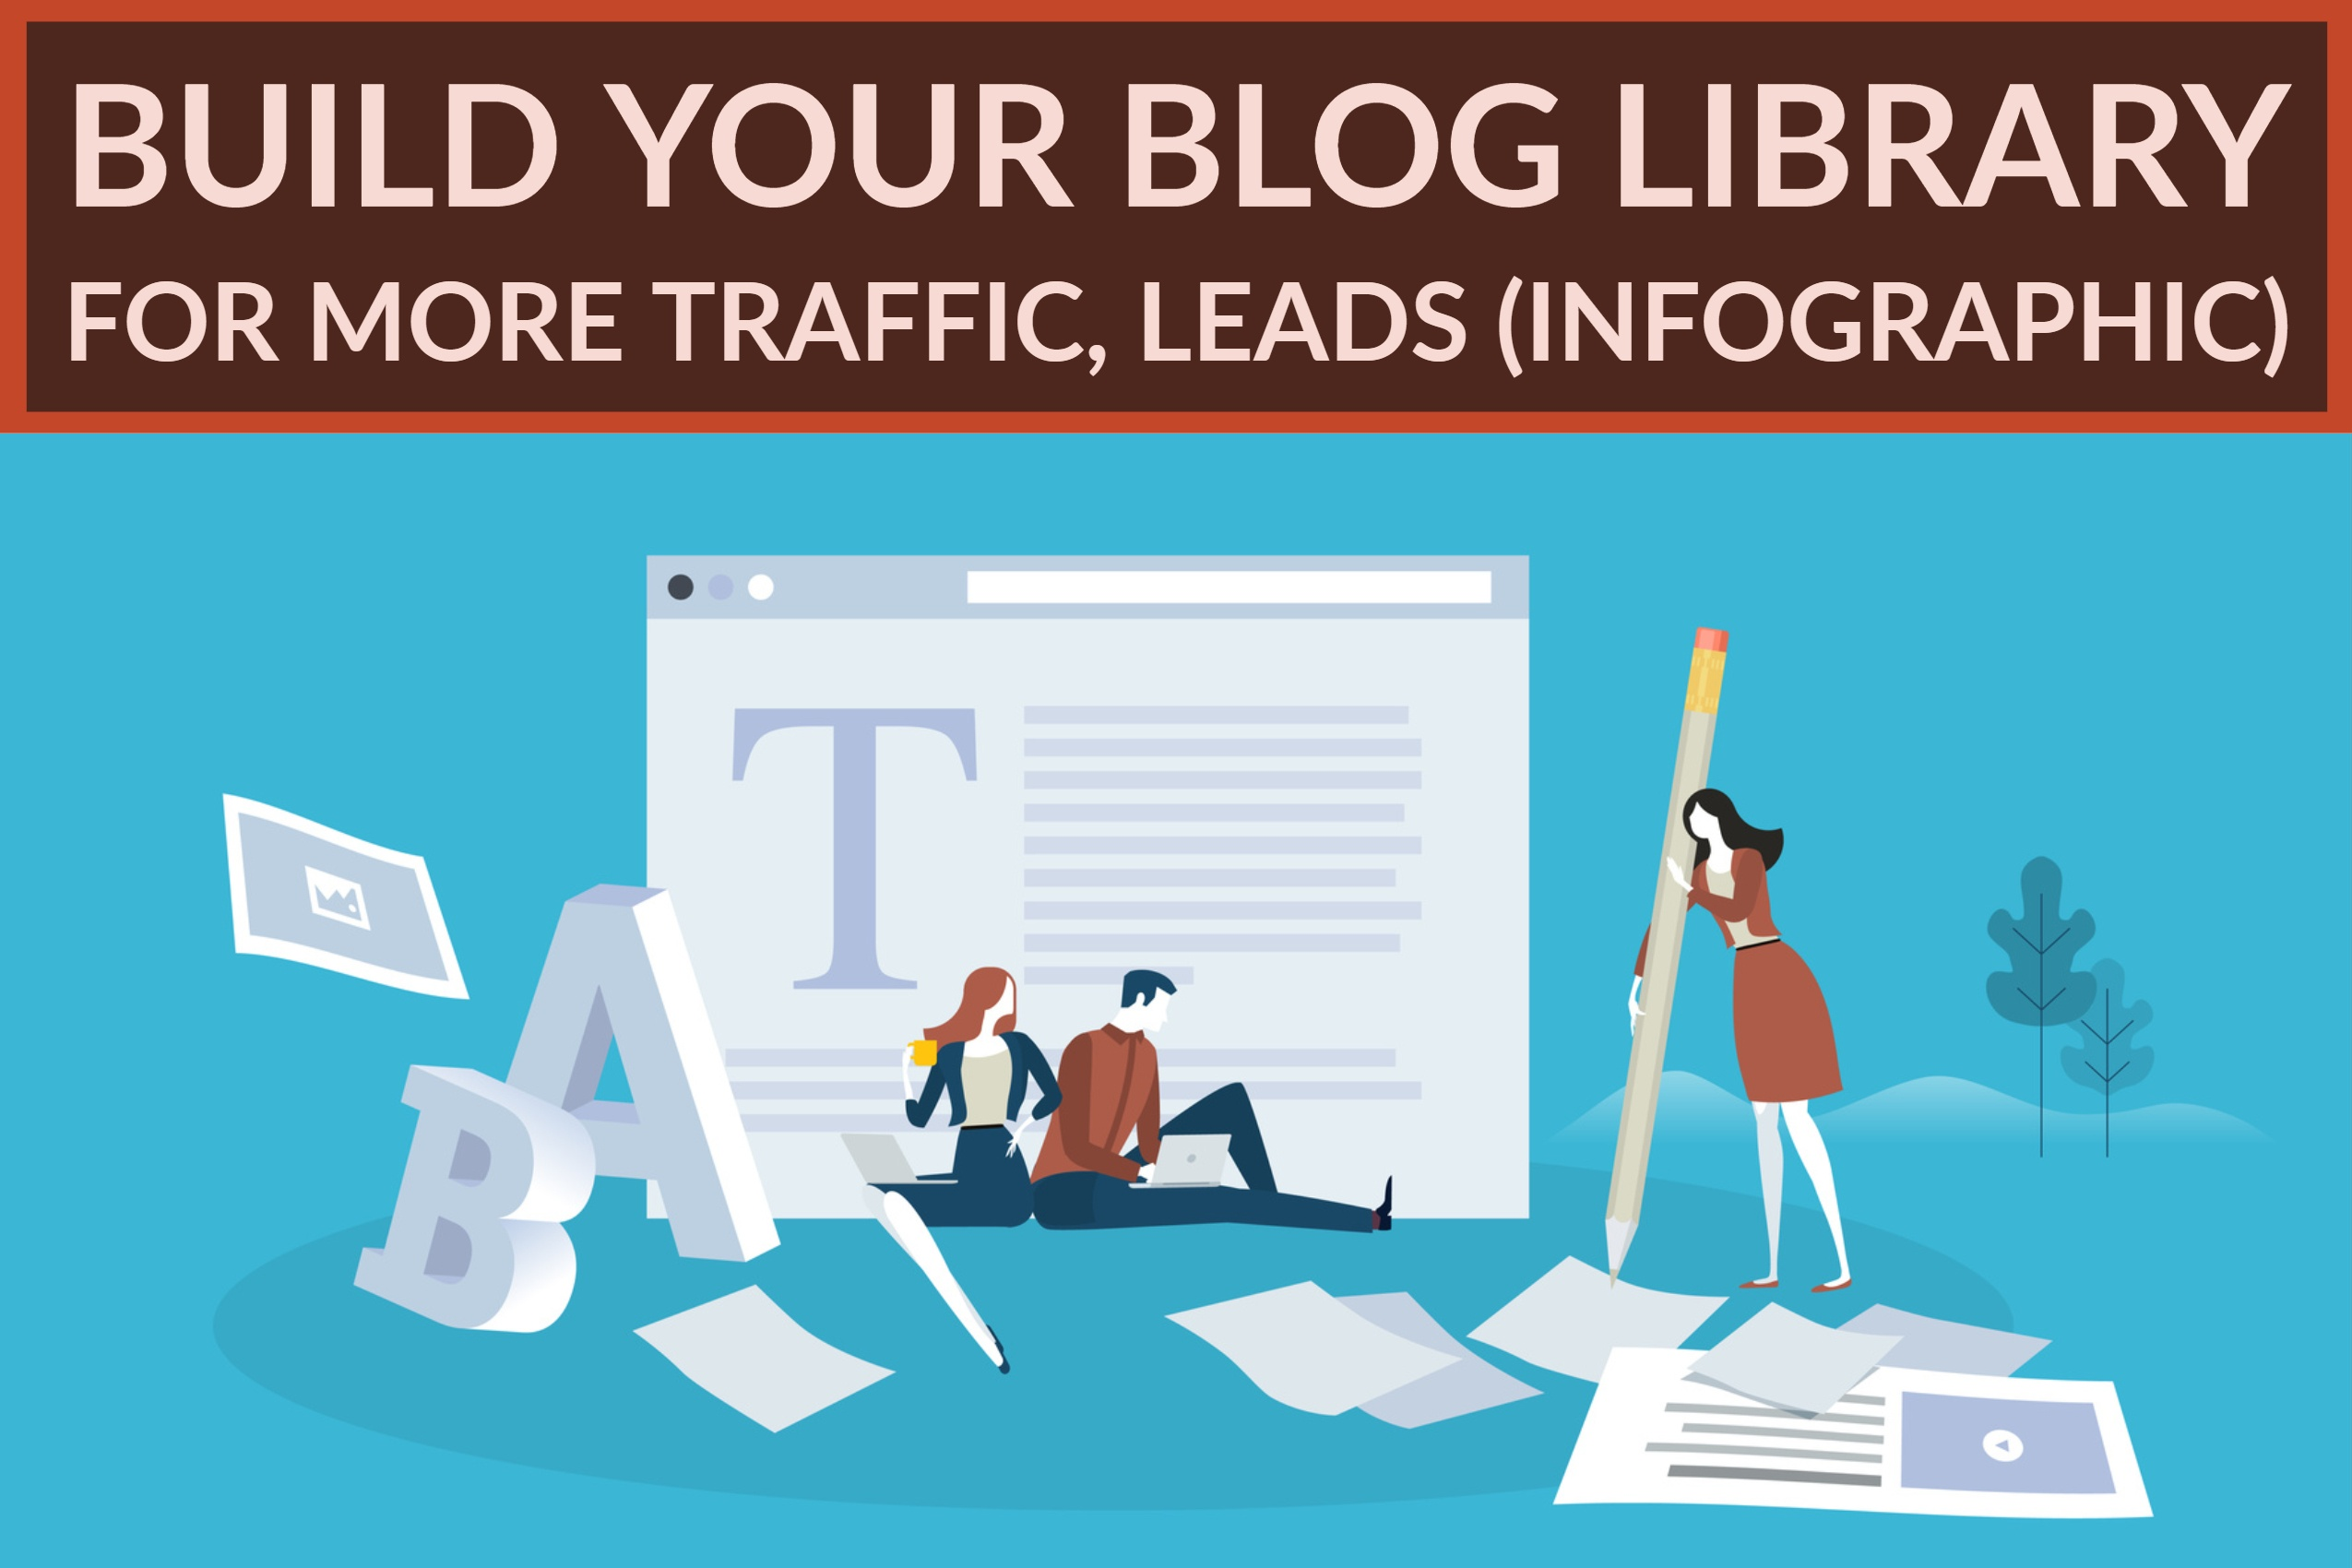 Build Your Blog Library For More Traffic, Leads (infographic) (1)